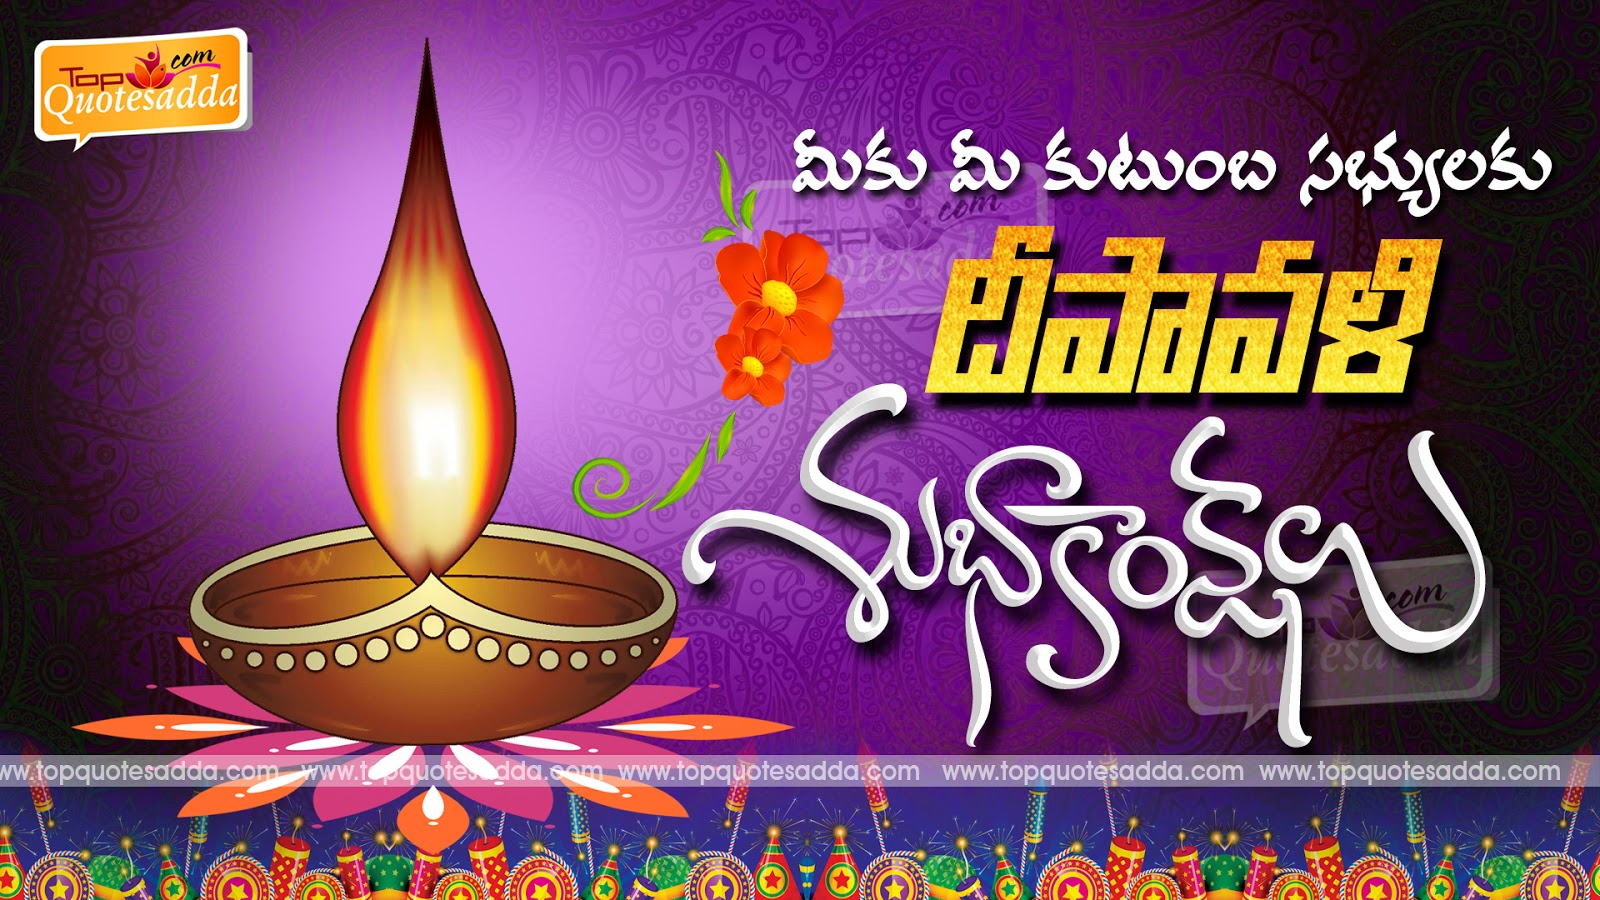 Happy Diwali Telugu Wishes Quotes And Greetings Topquotesadda